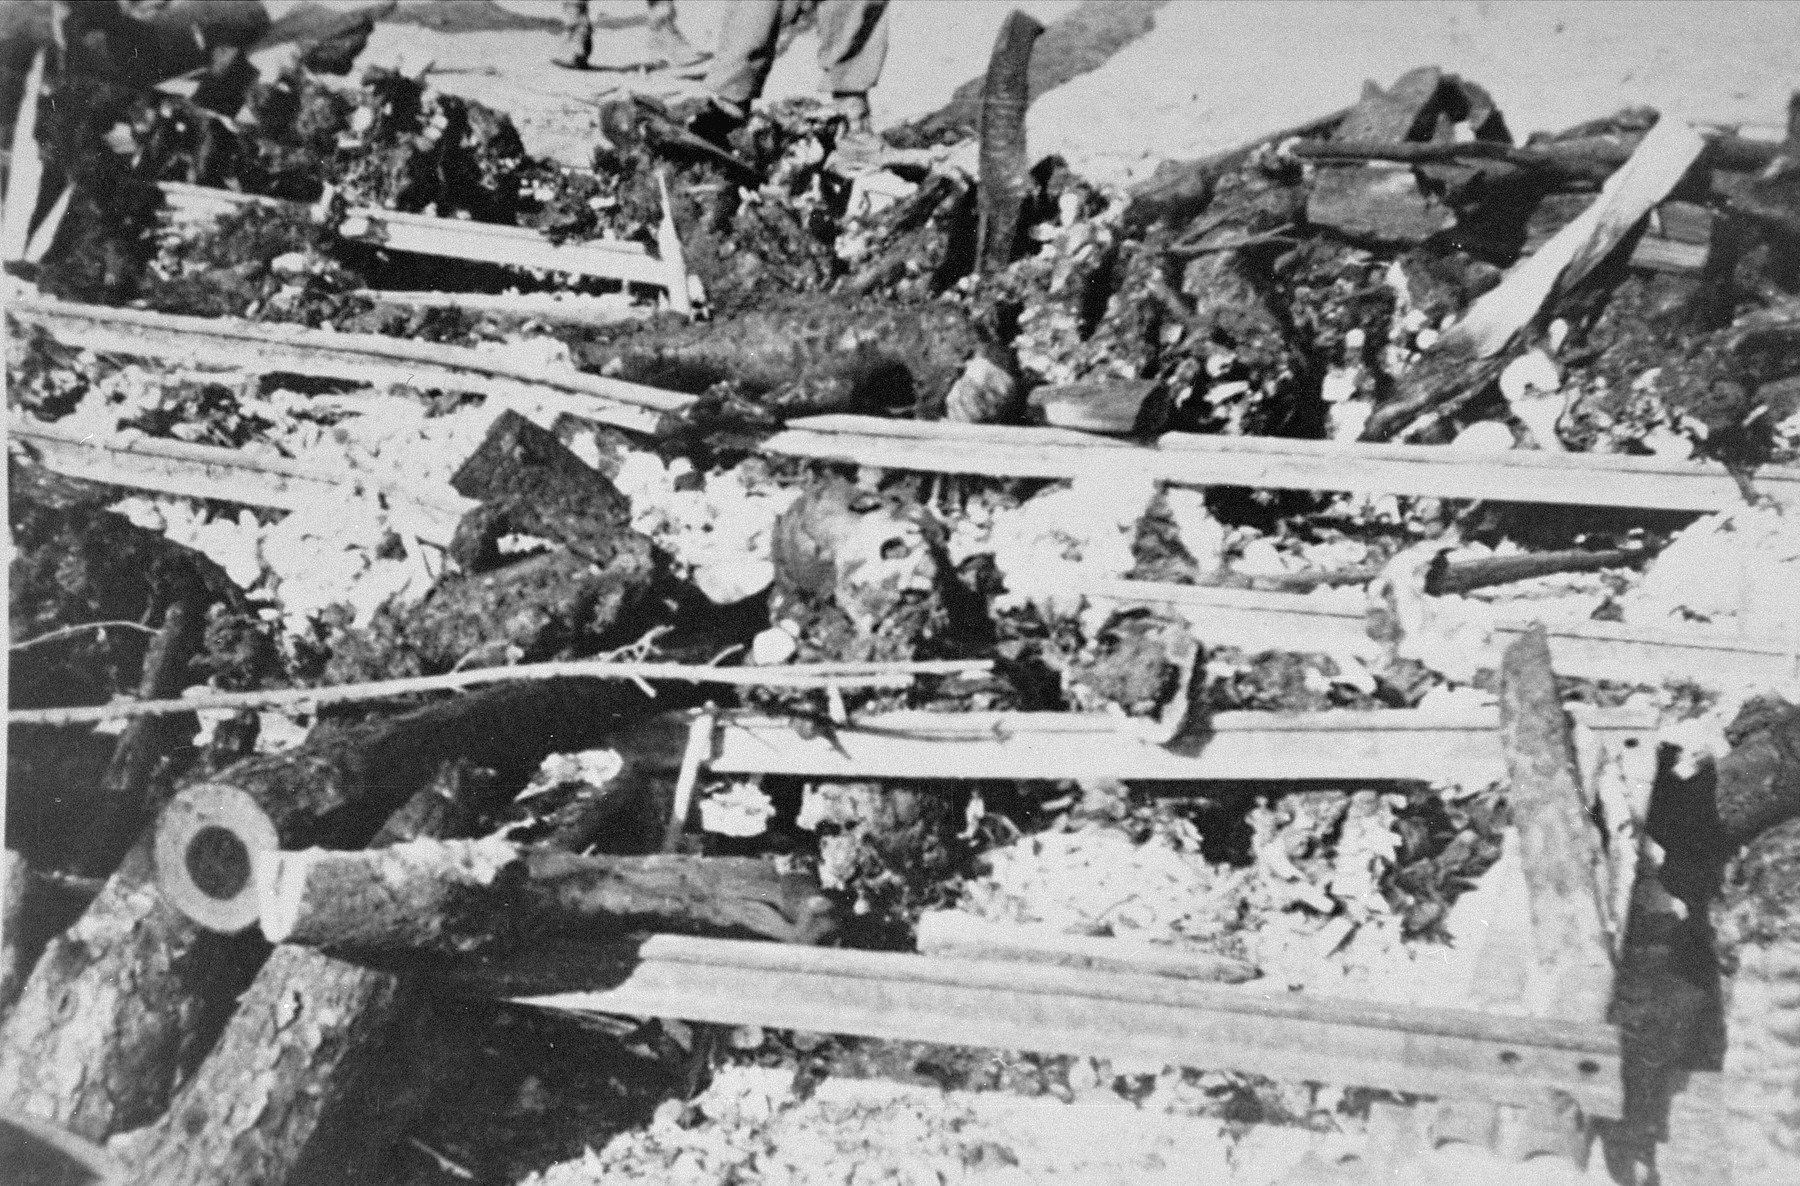 The charred remains of prisoners burned by camp personnel prior to the evacuation of Ohrdruf.